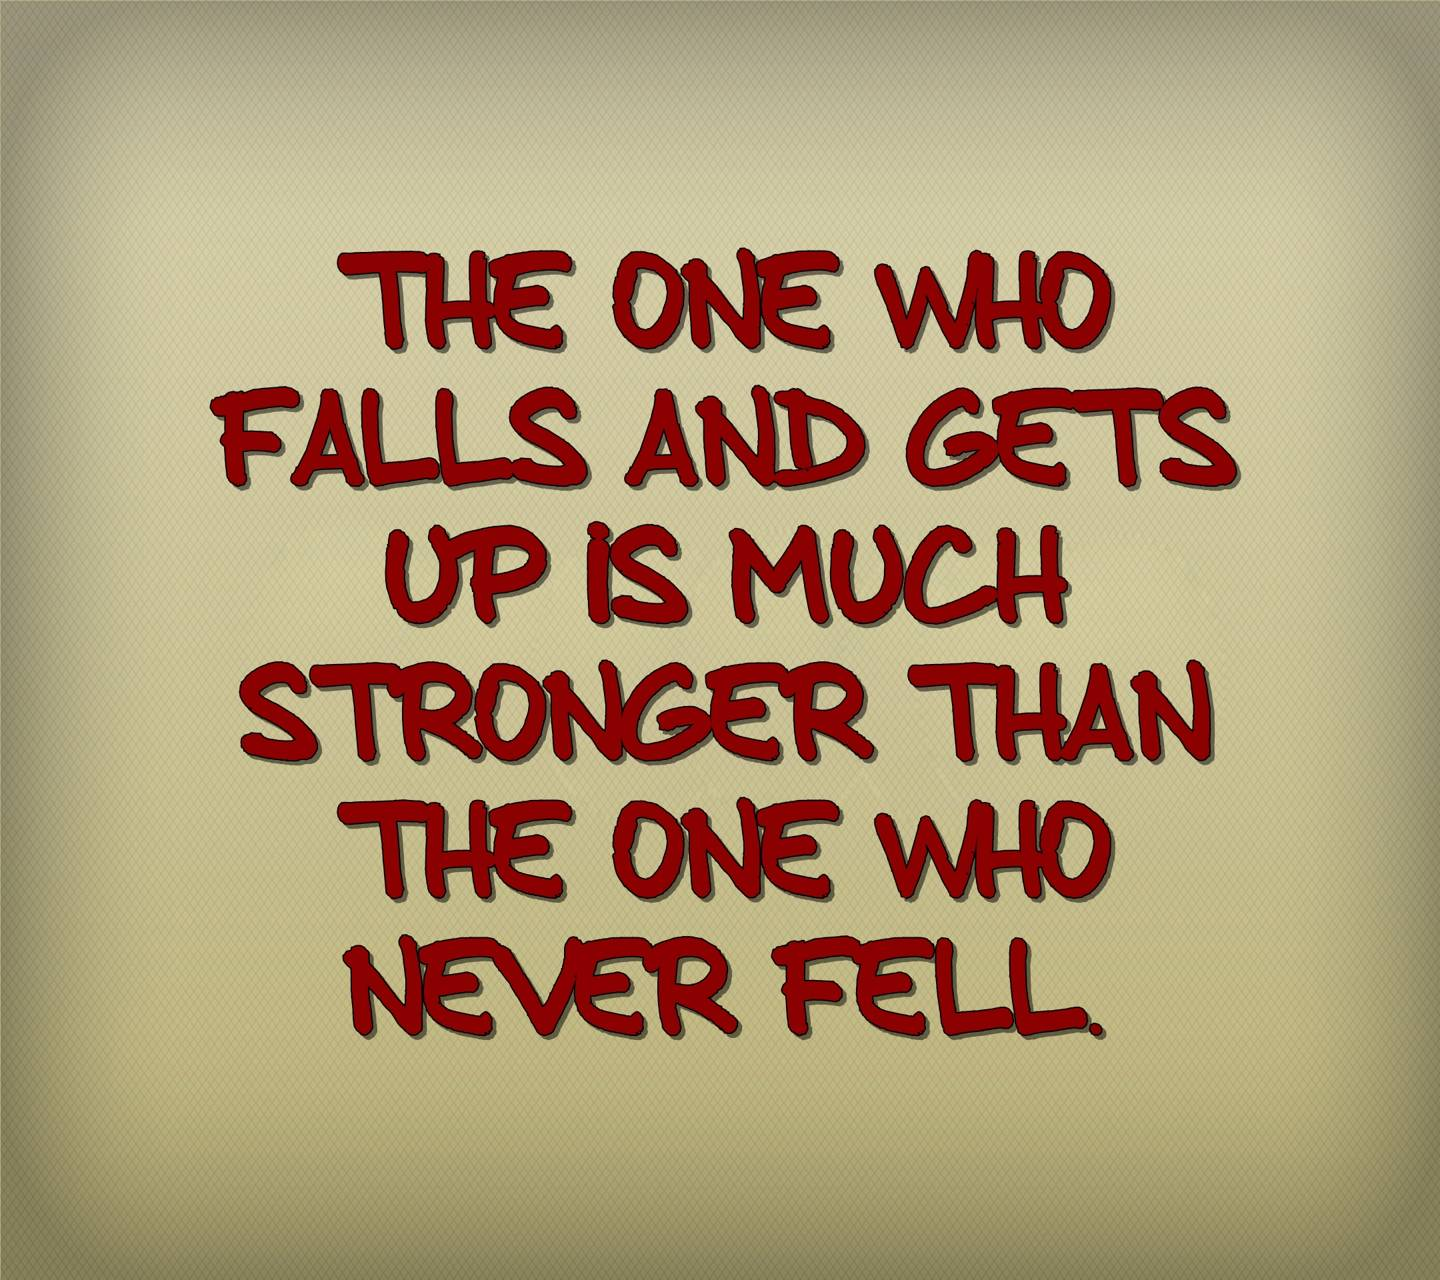 is much stronger